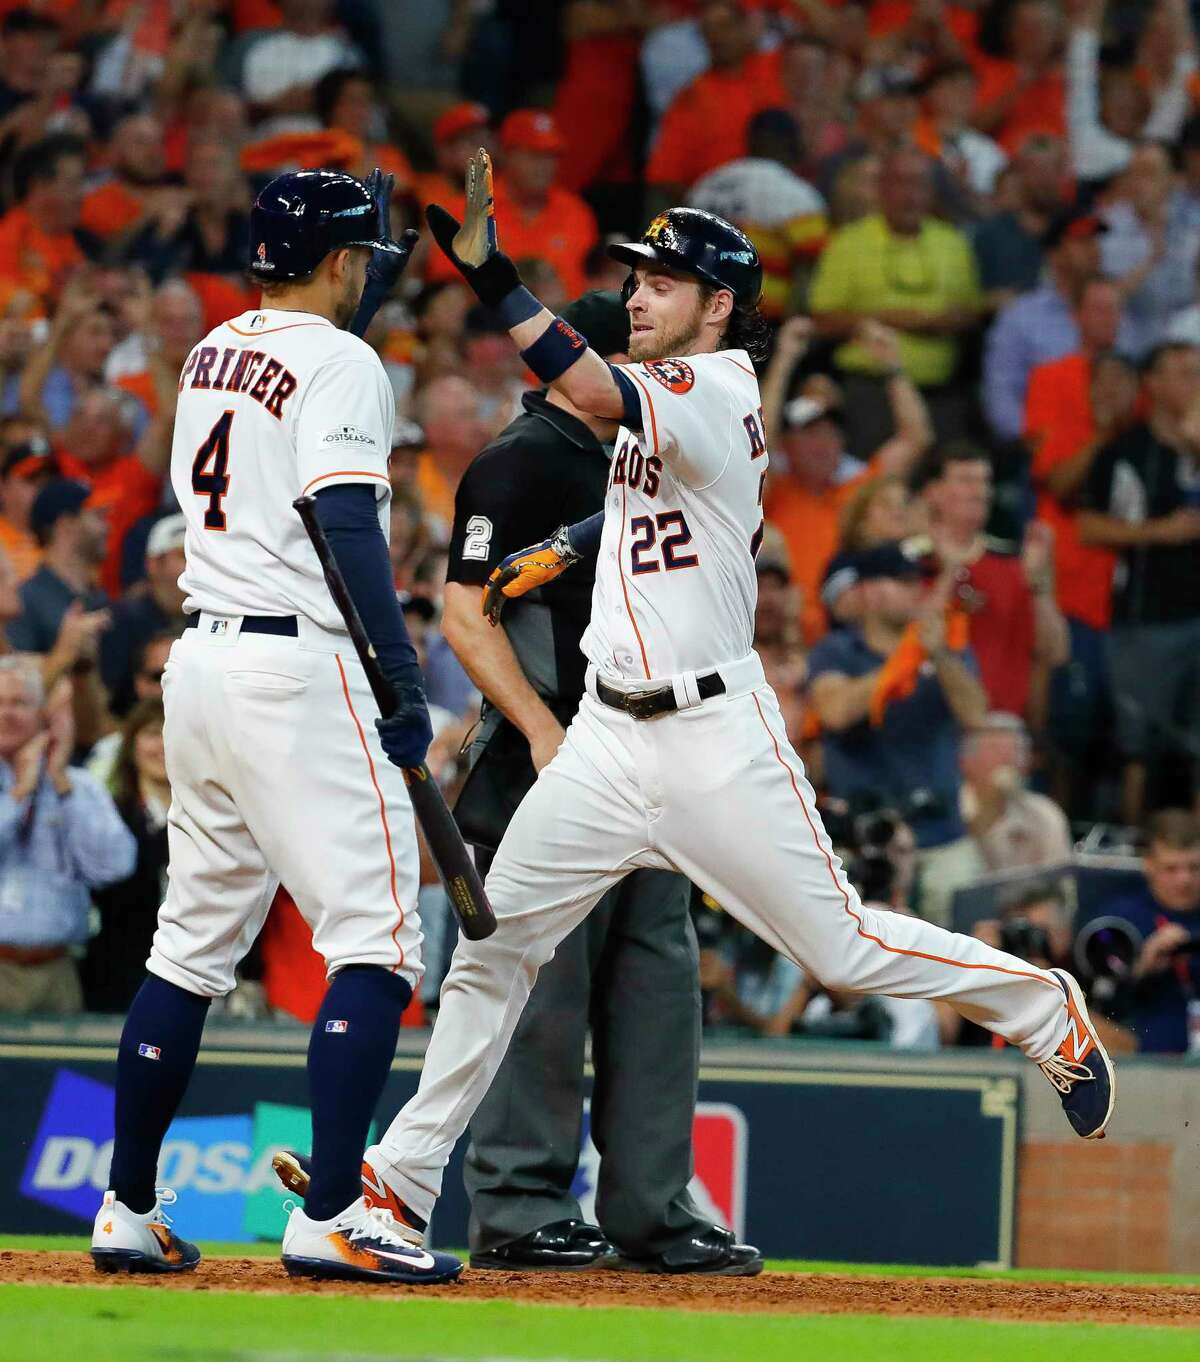 Houston Astros right fielder Josh Reddick comes home during the sixth inning of Game 1 of the ALDS at Minute Maid Park on Tuesday, Oct. 3, 2017, in Houston.